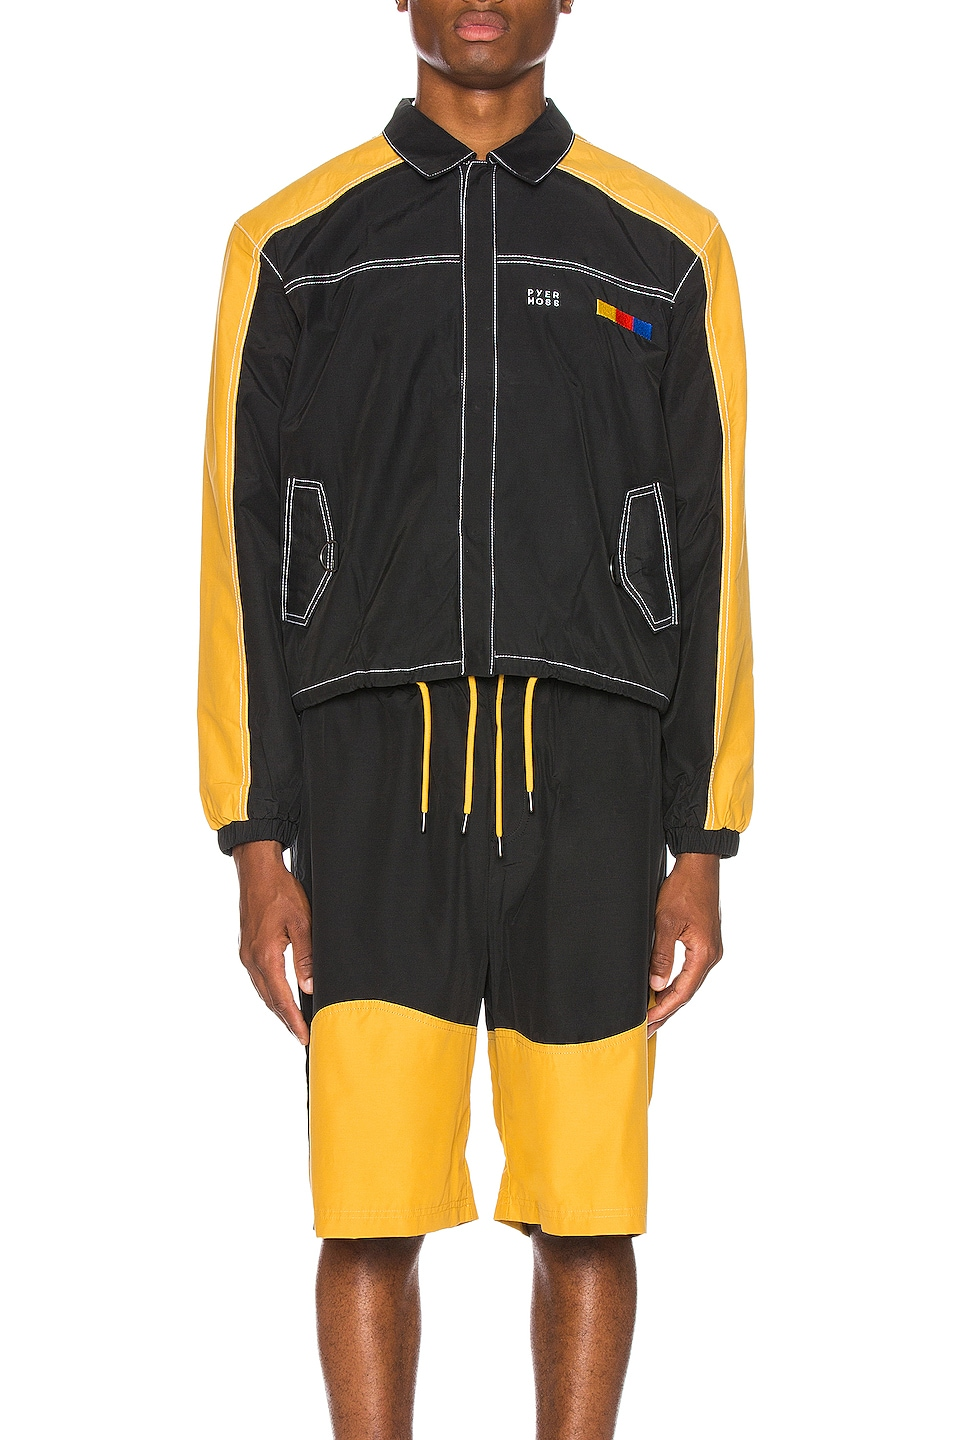 Image 2 of Pyer Moss Signature Coaches Jacket in Black & Yellow